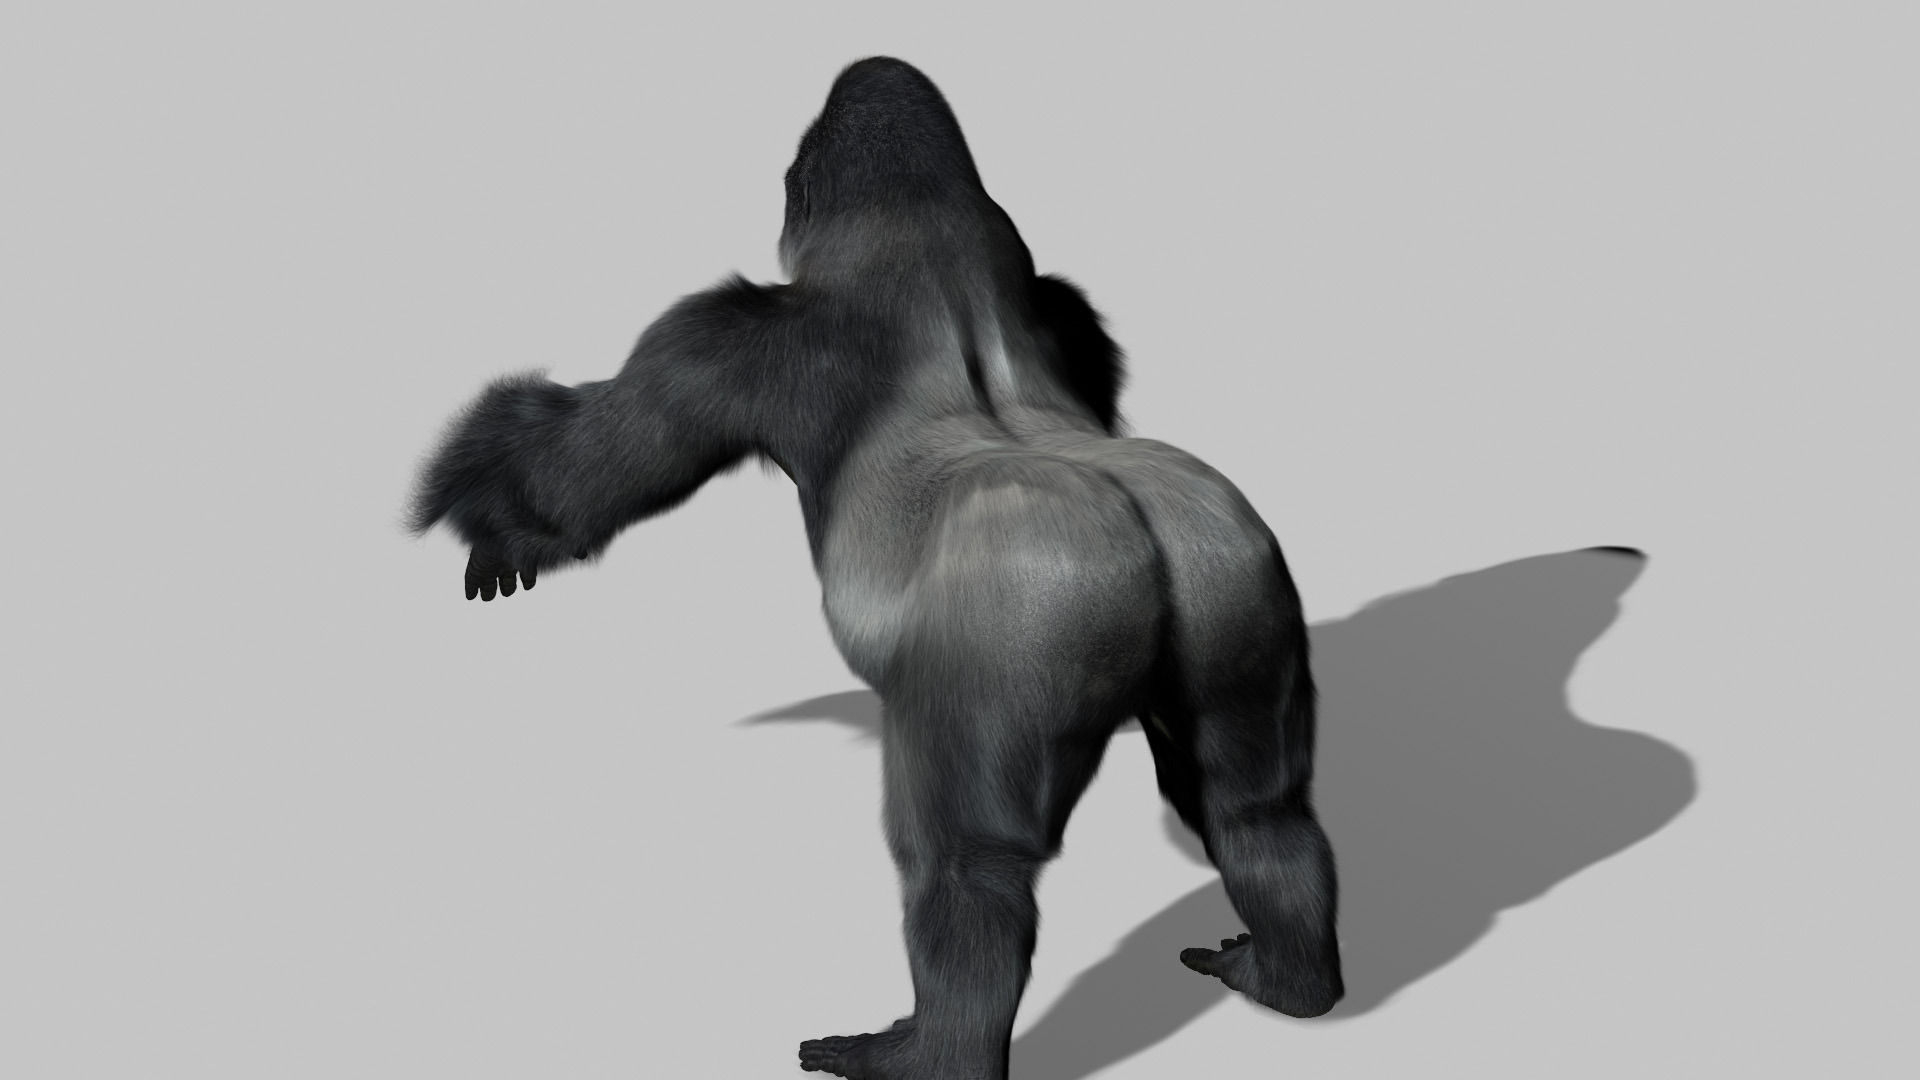 Gorilla 3D model Rigged and Animated